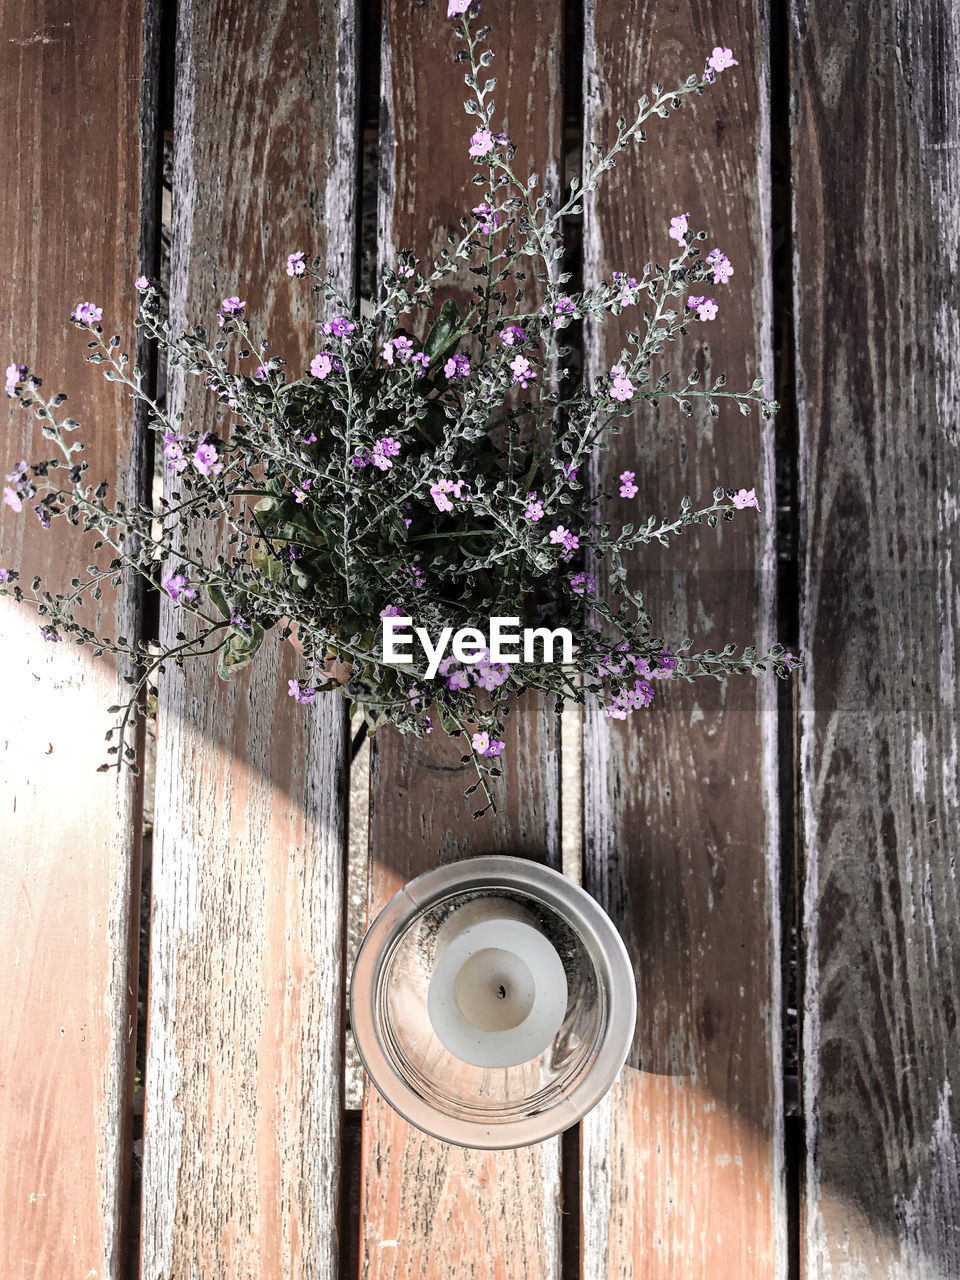 flower, flowering plant, wood - material, plant, freshness, fragility, vulnerability, nature, no people, close-up, beauty in nature, outdoors, purple, day, table, directly above, vase, flower head, glass - material, flower arrangement, flower pot, bouquet, wood grain